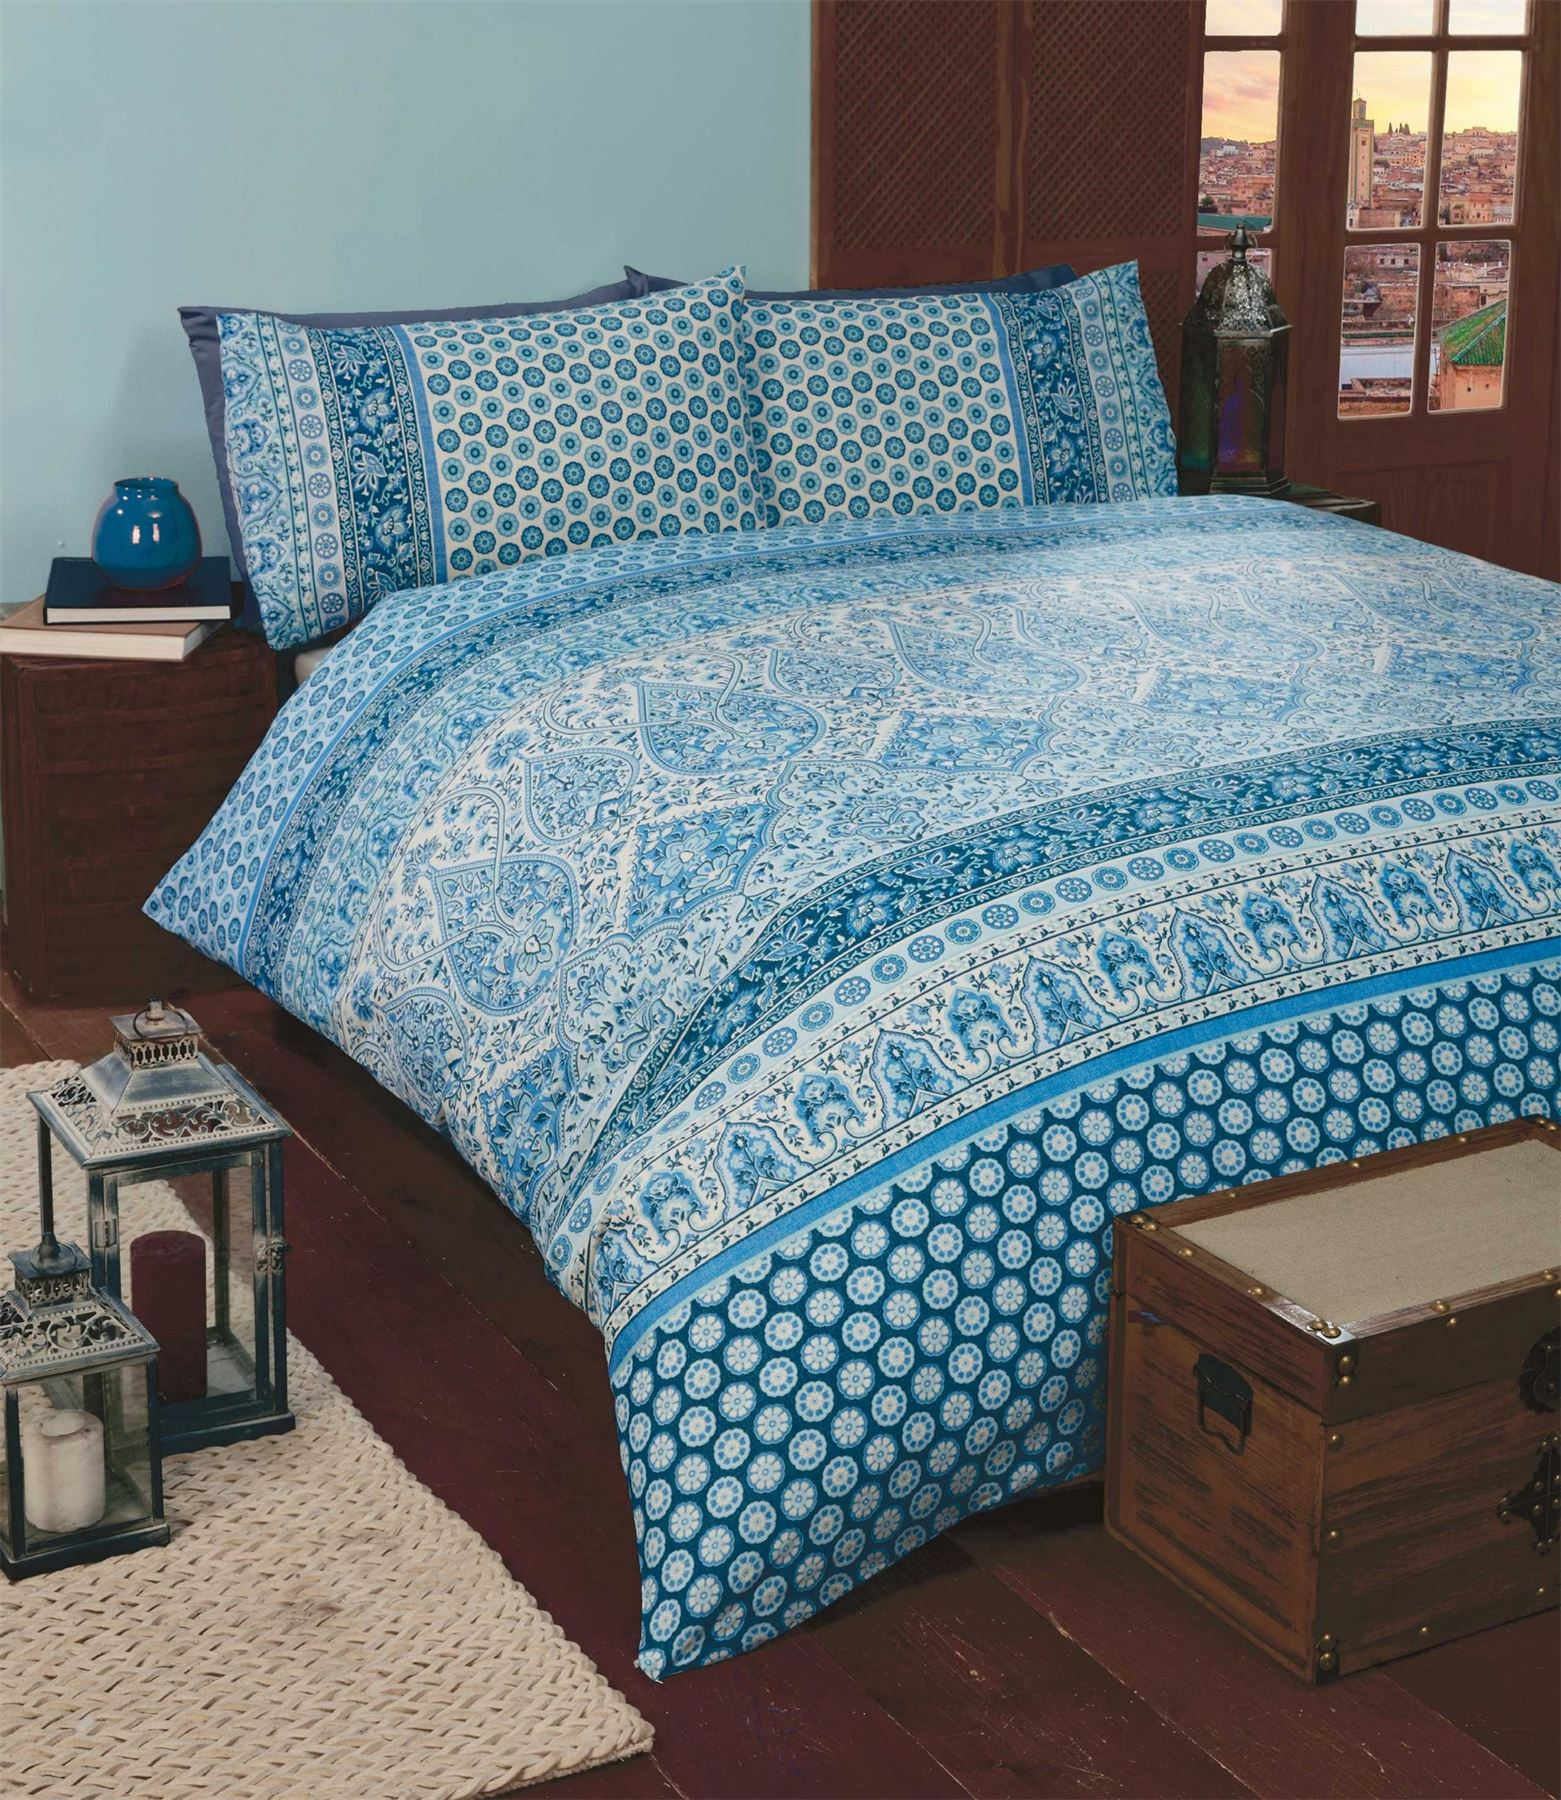 bedding duvet with two cover bohemian sets pillow covers cases inc itm quilt luxury medallion boho and set moroccan